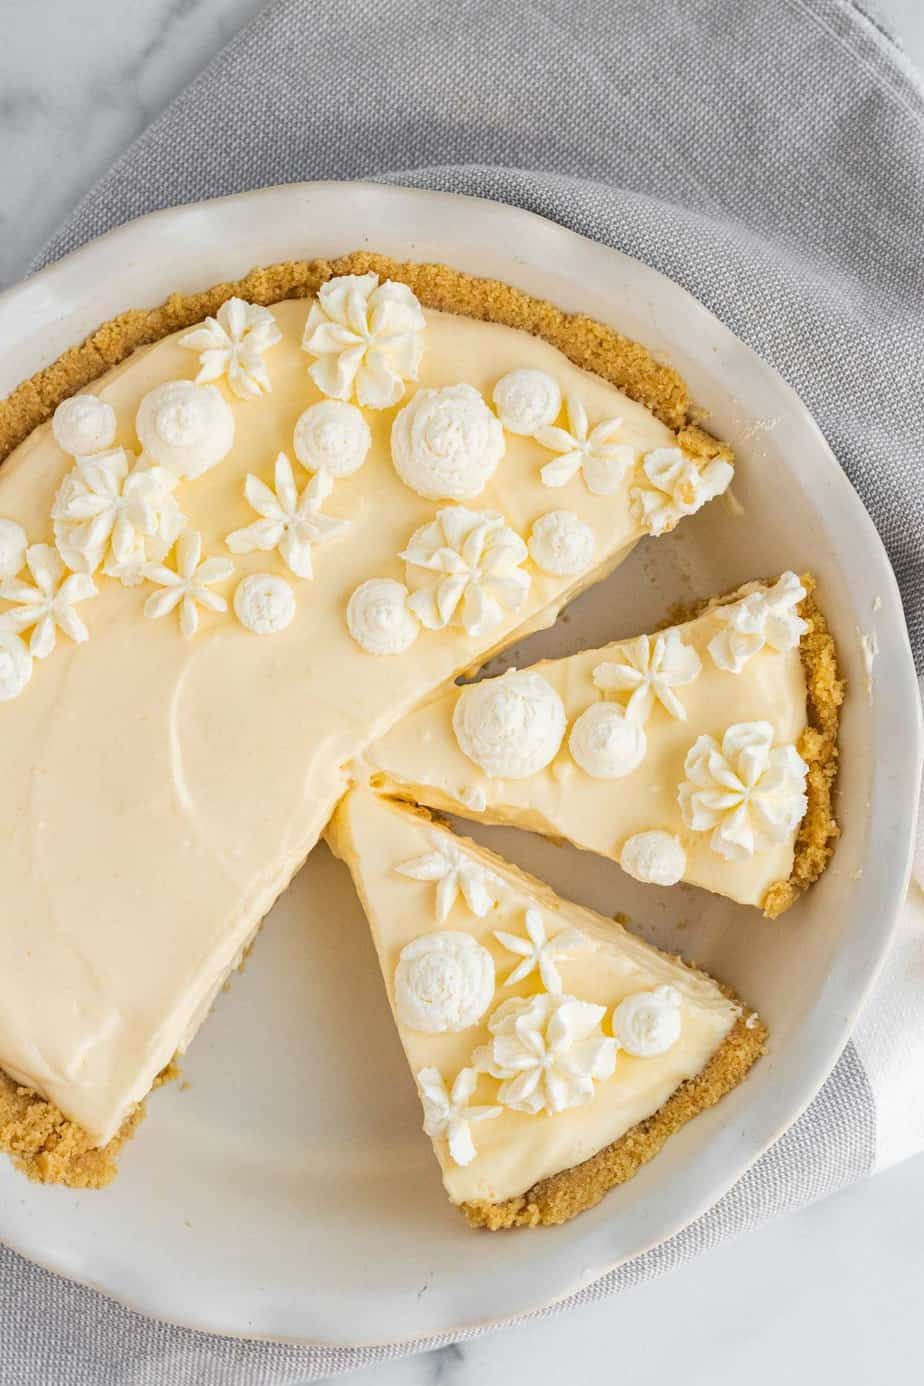 lemon cream pie with whipped cream decorations in white pie dish with 2 slices cut from pie